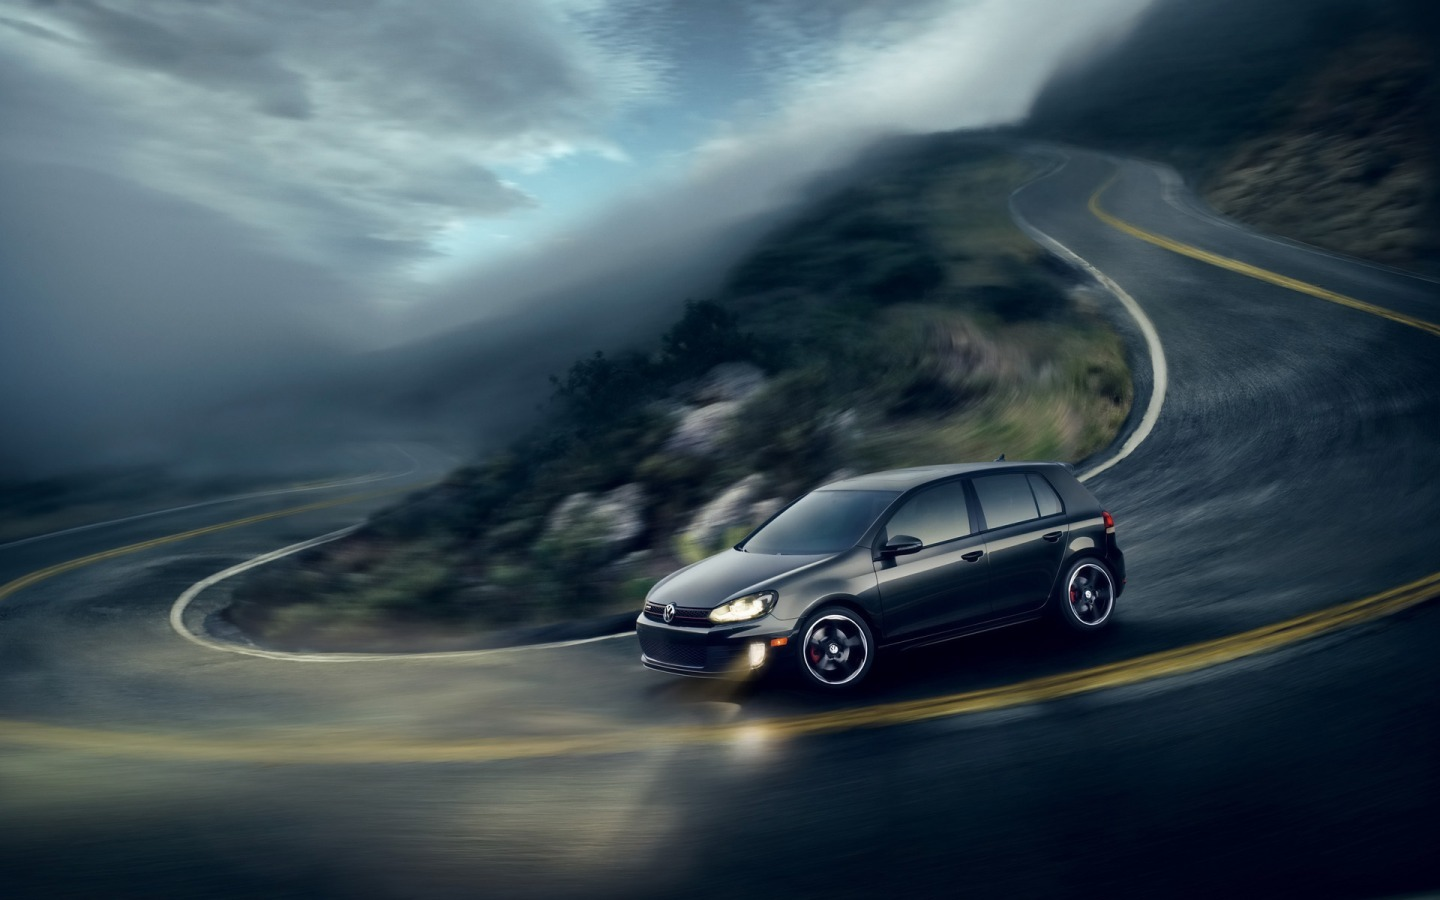 cars German cars Volkswagen HD Wallpaper